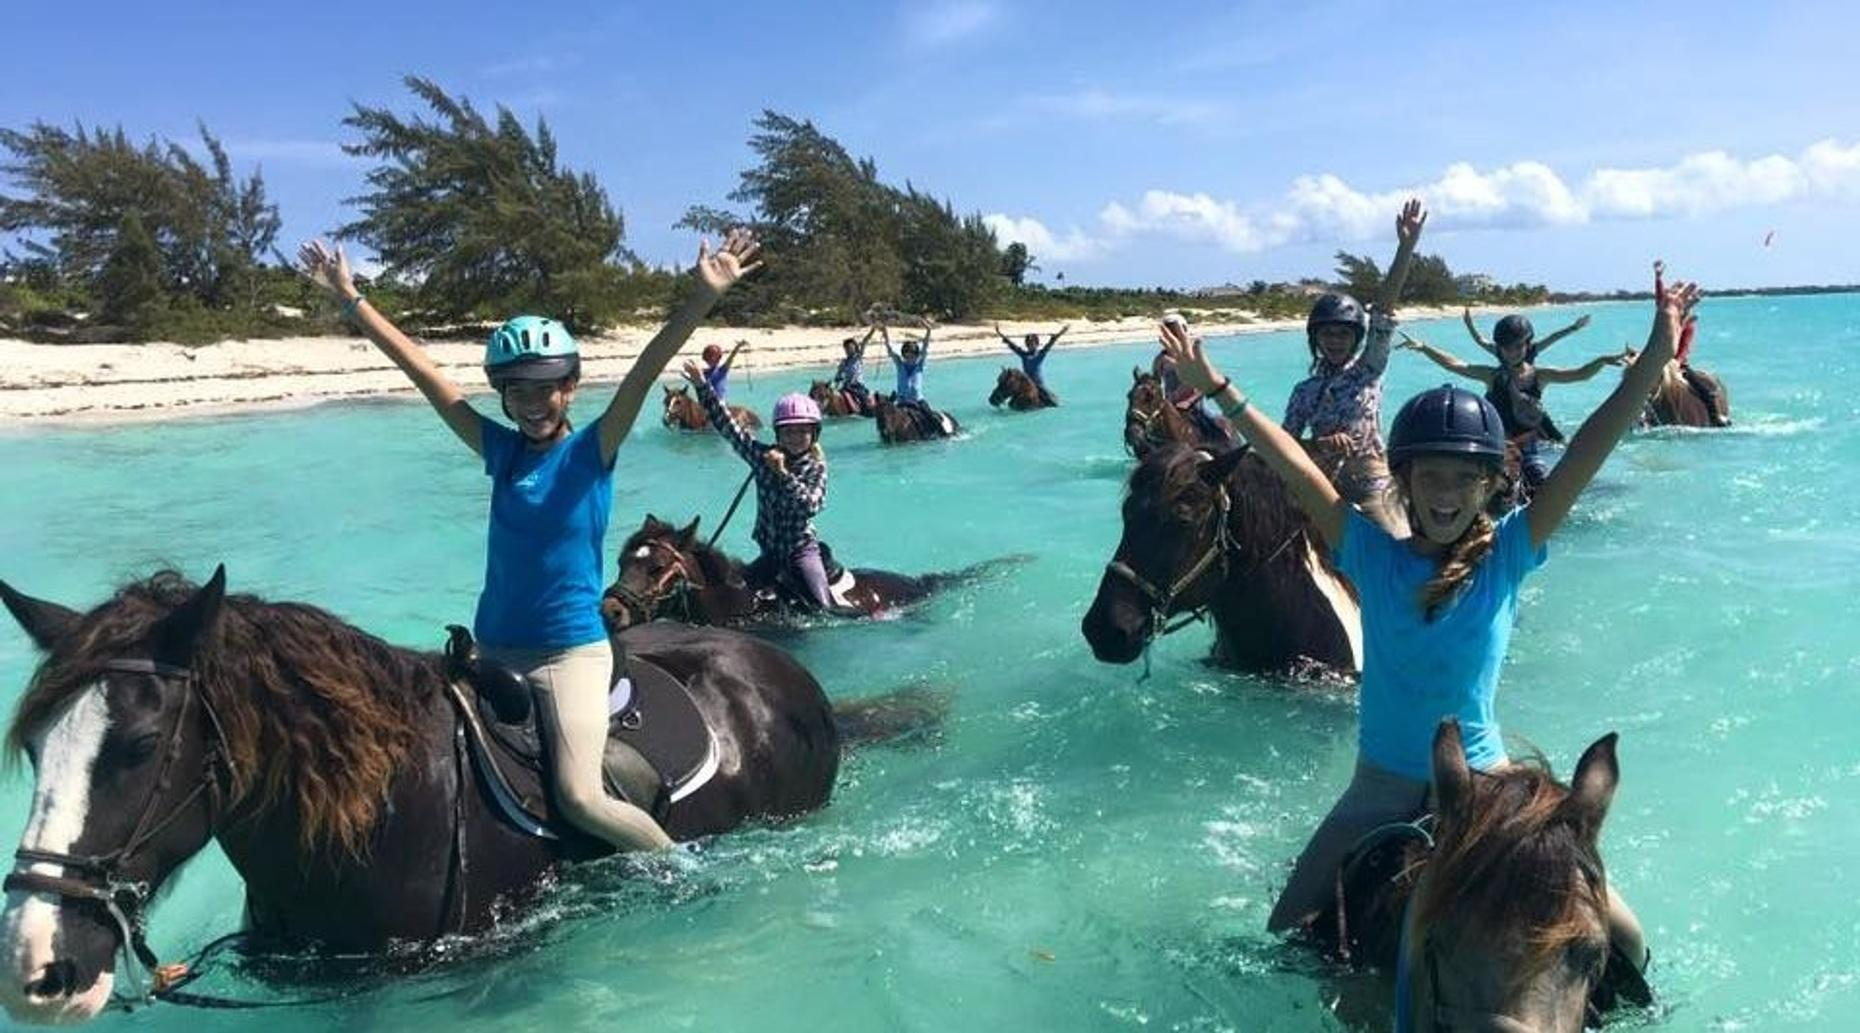 60-Minute Group Horseback Ride in Turks & Caicos